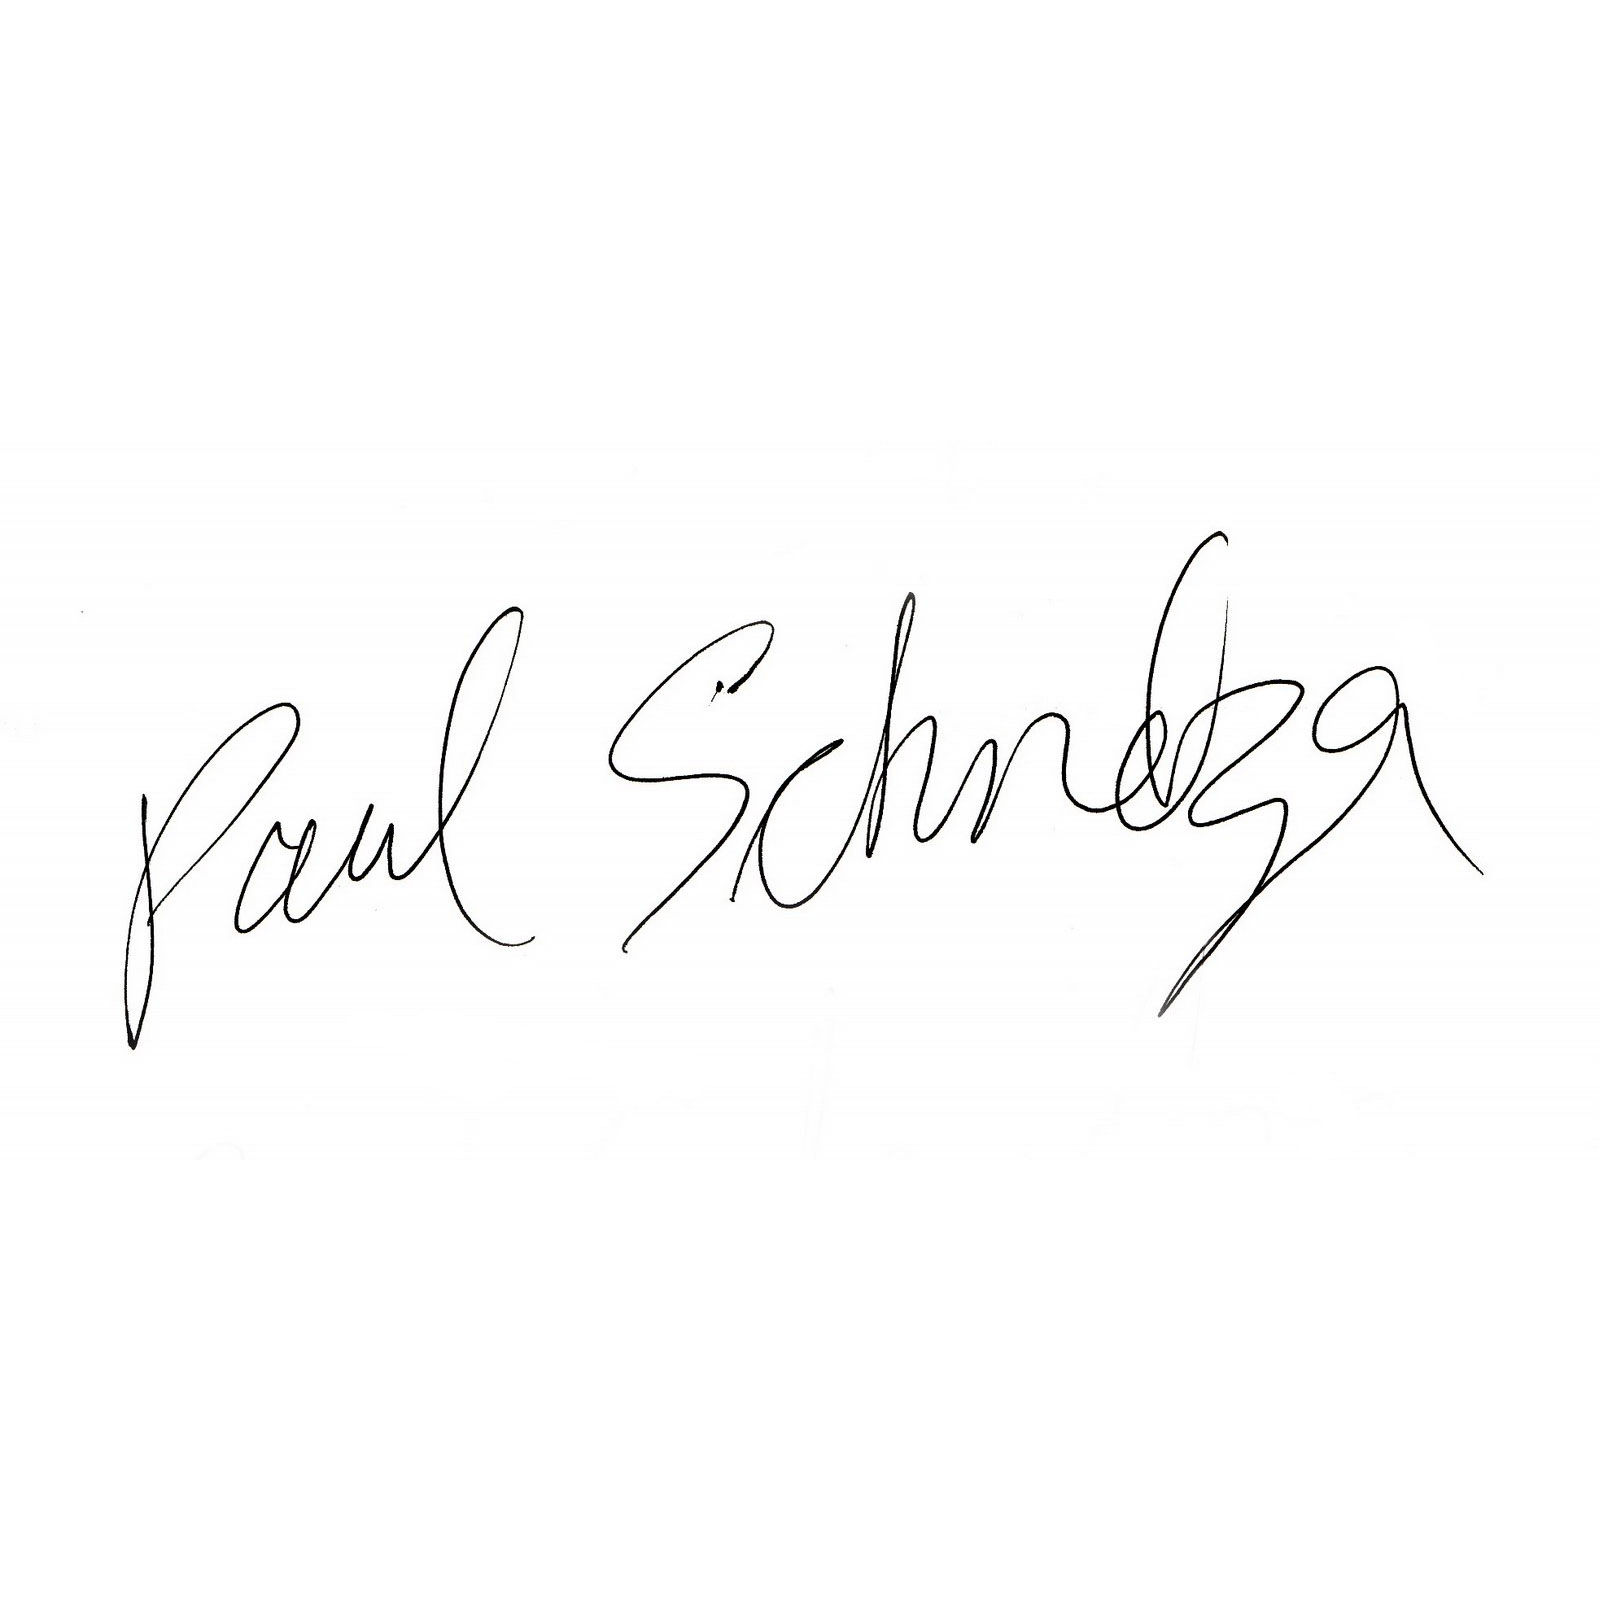 Paul Schmelzer as signed by Sonic Youth's Kim Gordon